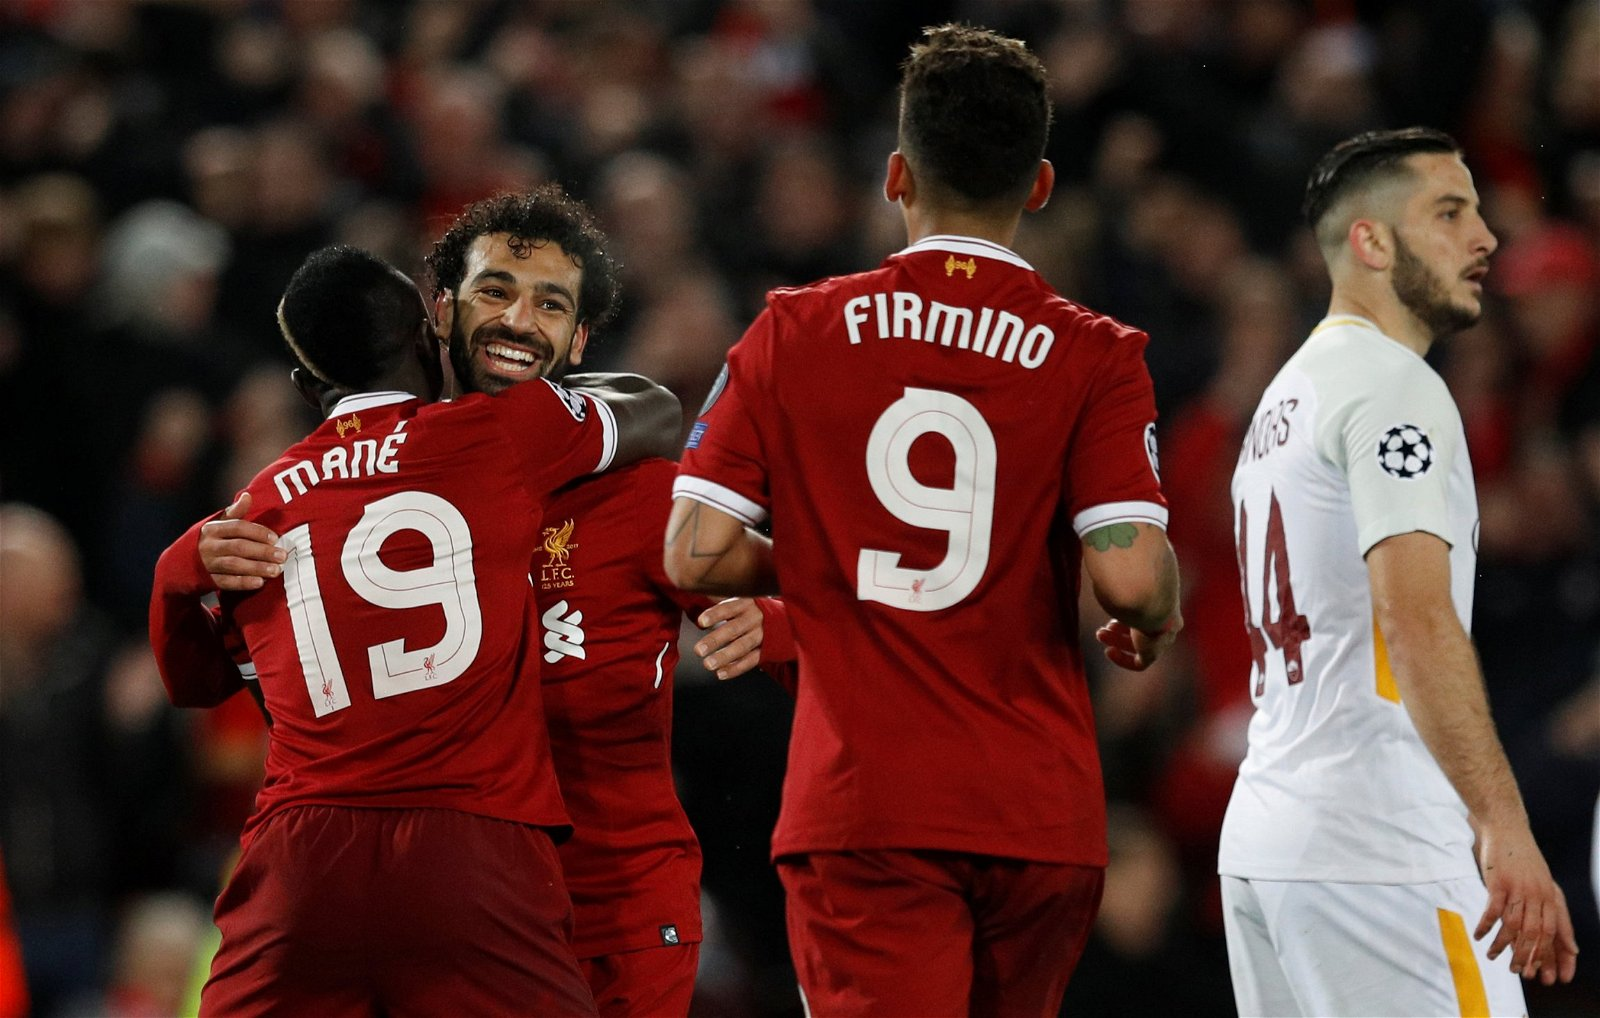 Sadio Mane, Mohamed Salah and Roberto Firmino